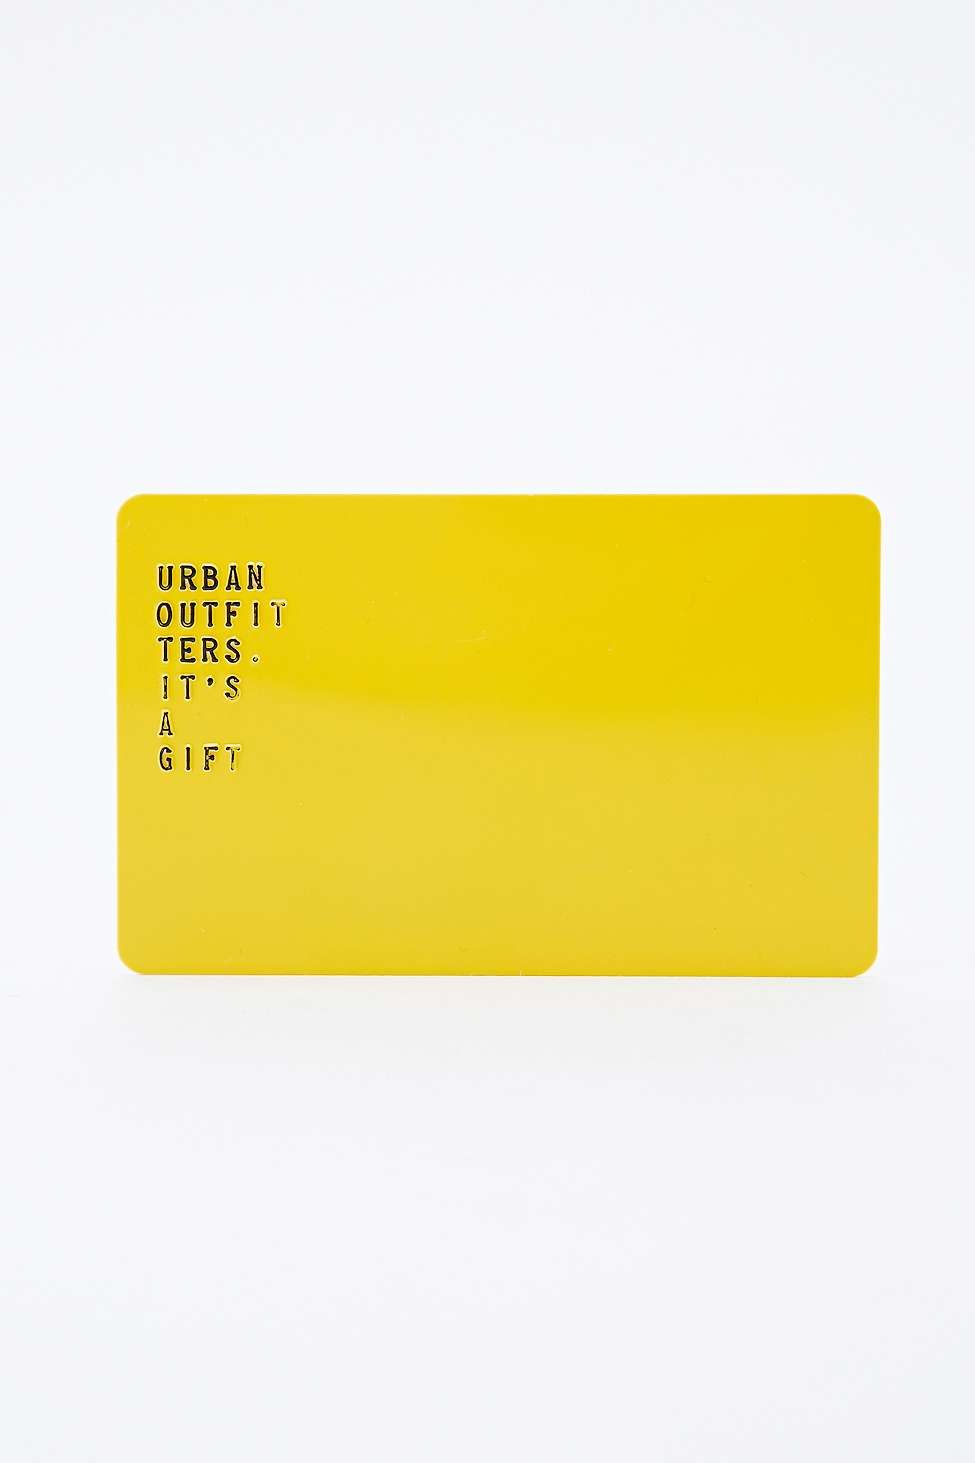 Gift card by post urban outfitters gift card gift card